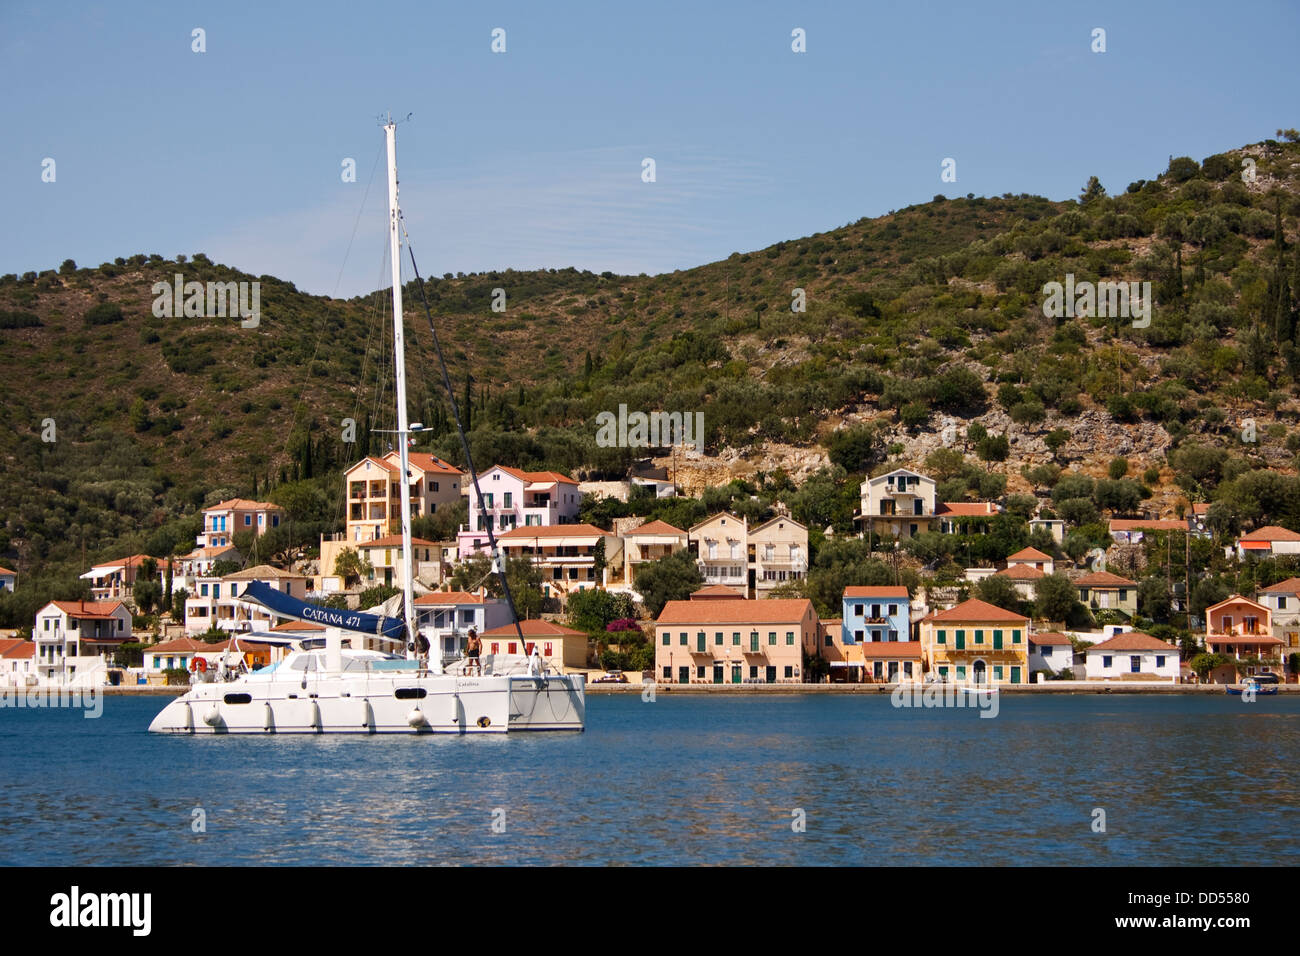 A sailing catamaran in the bay at Vathy, on the Greek island of Ithaca. - Stock Image